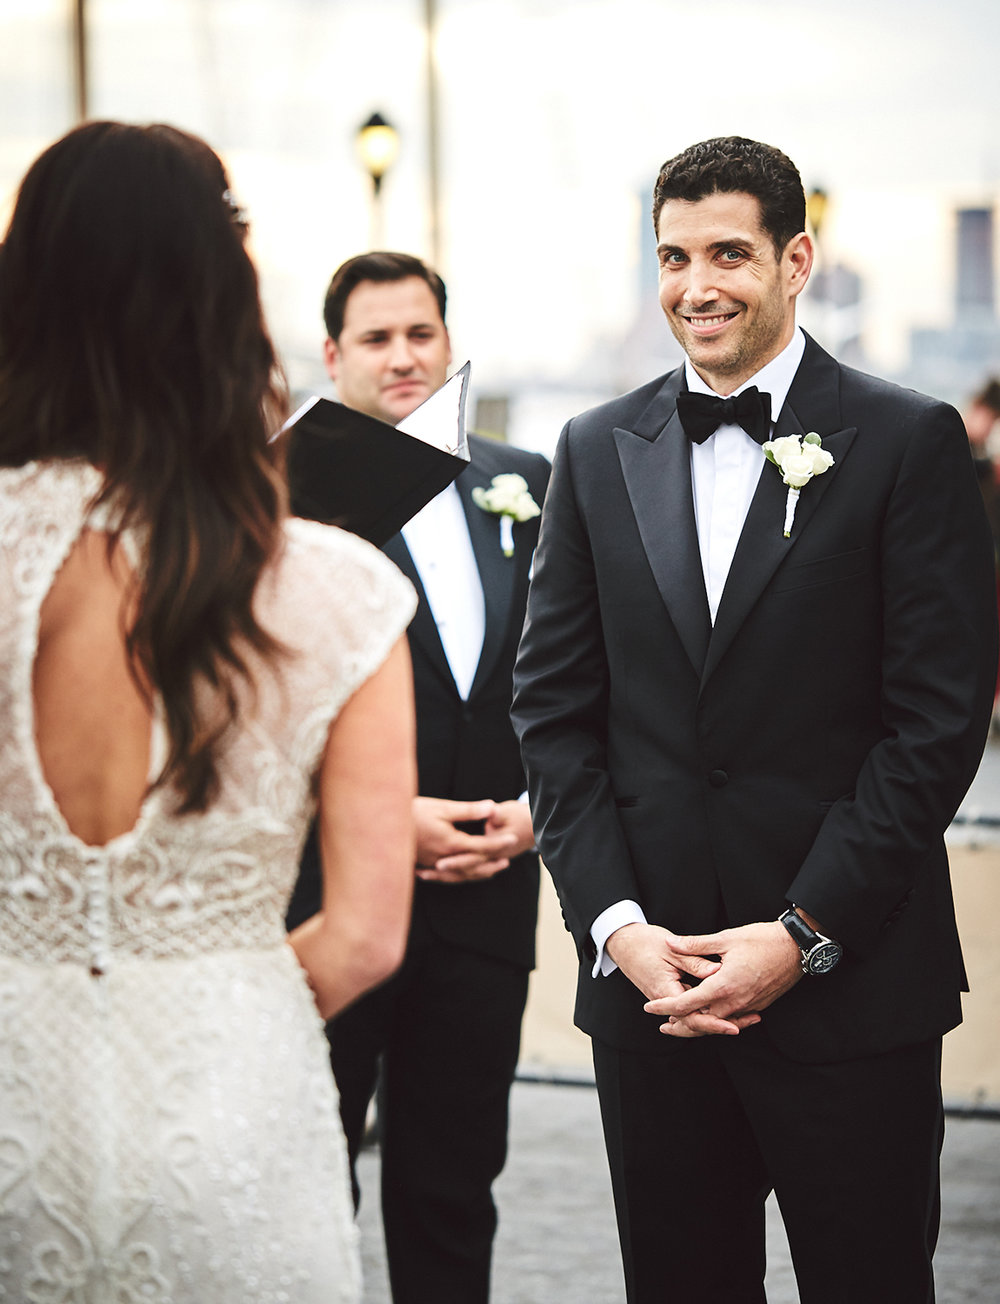 180622_BatteryGardensWeddingPhotography_NYCWeddingPhotographer_BriJohnsonWeddings_0076.jpg